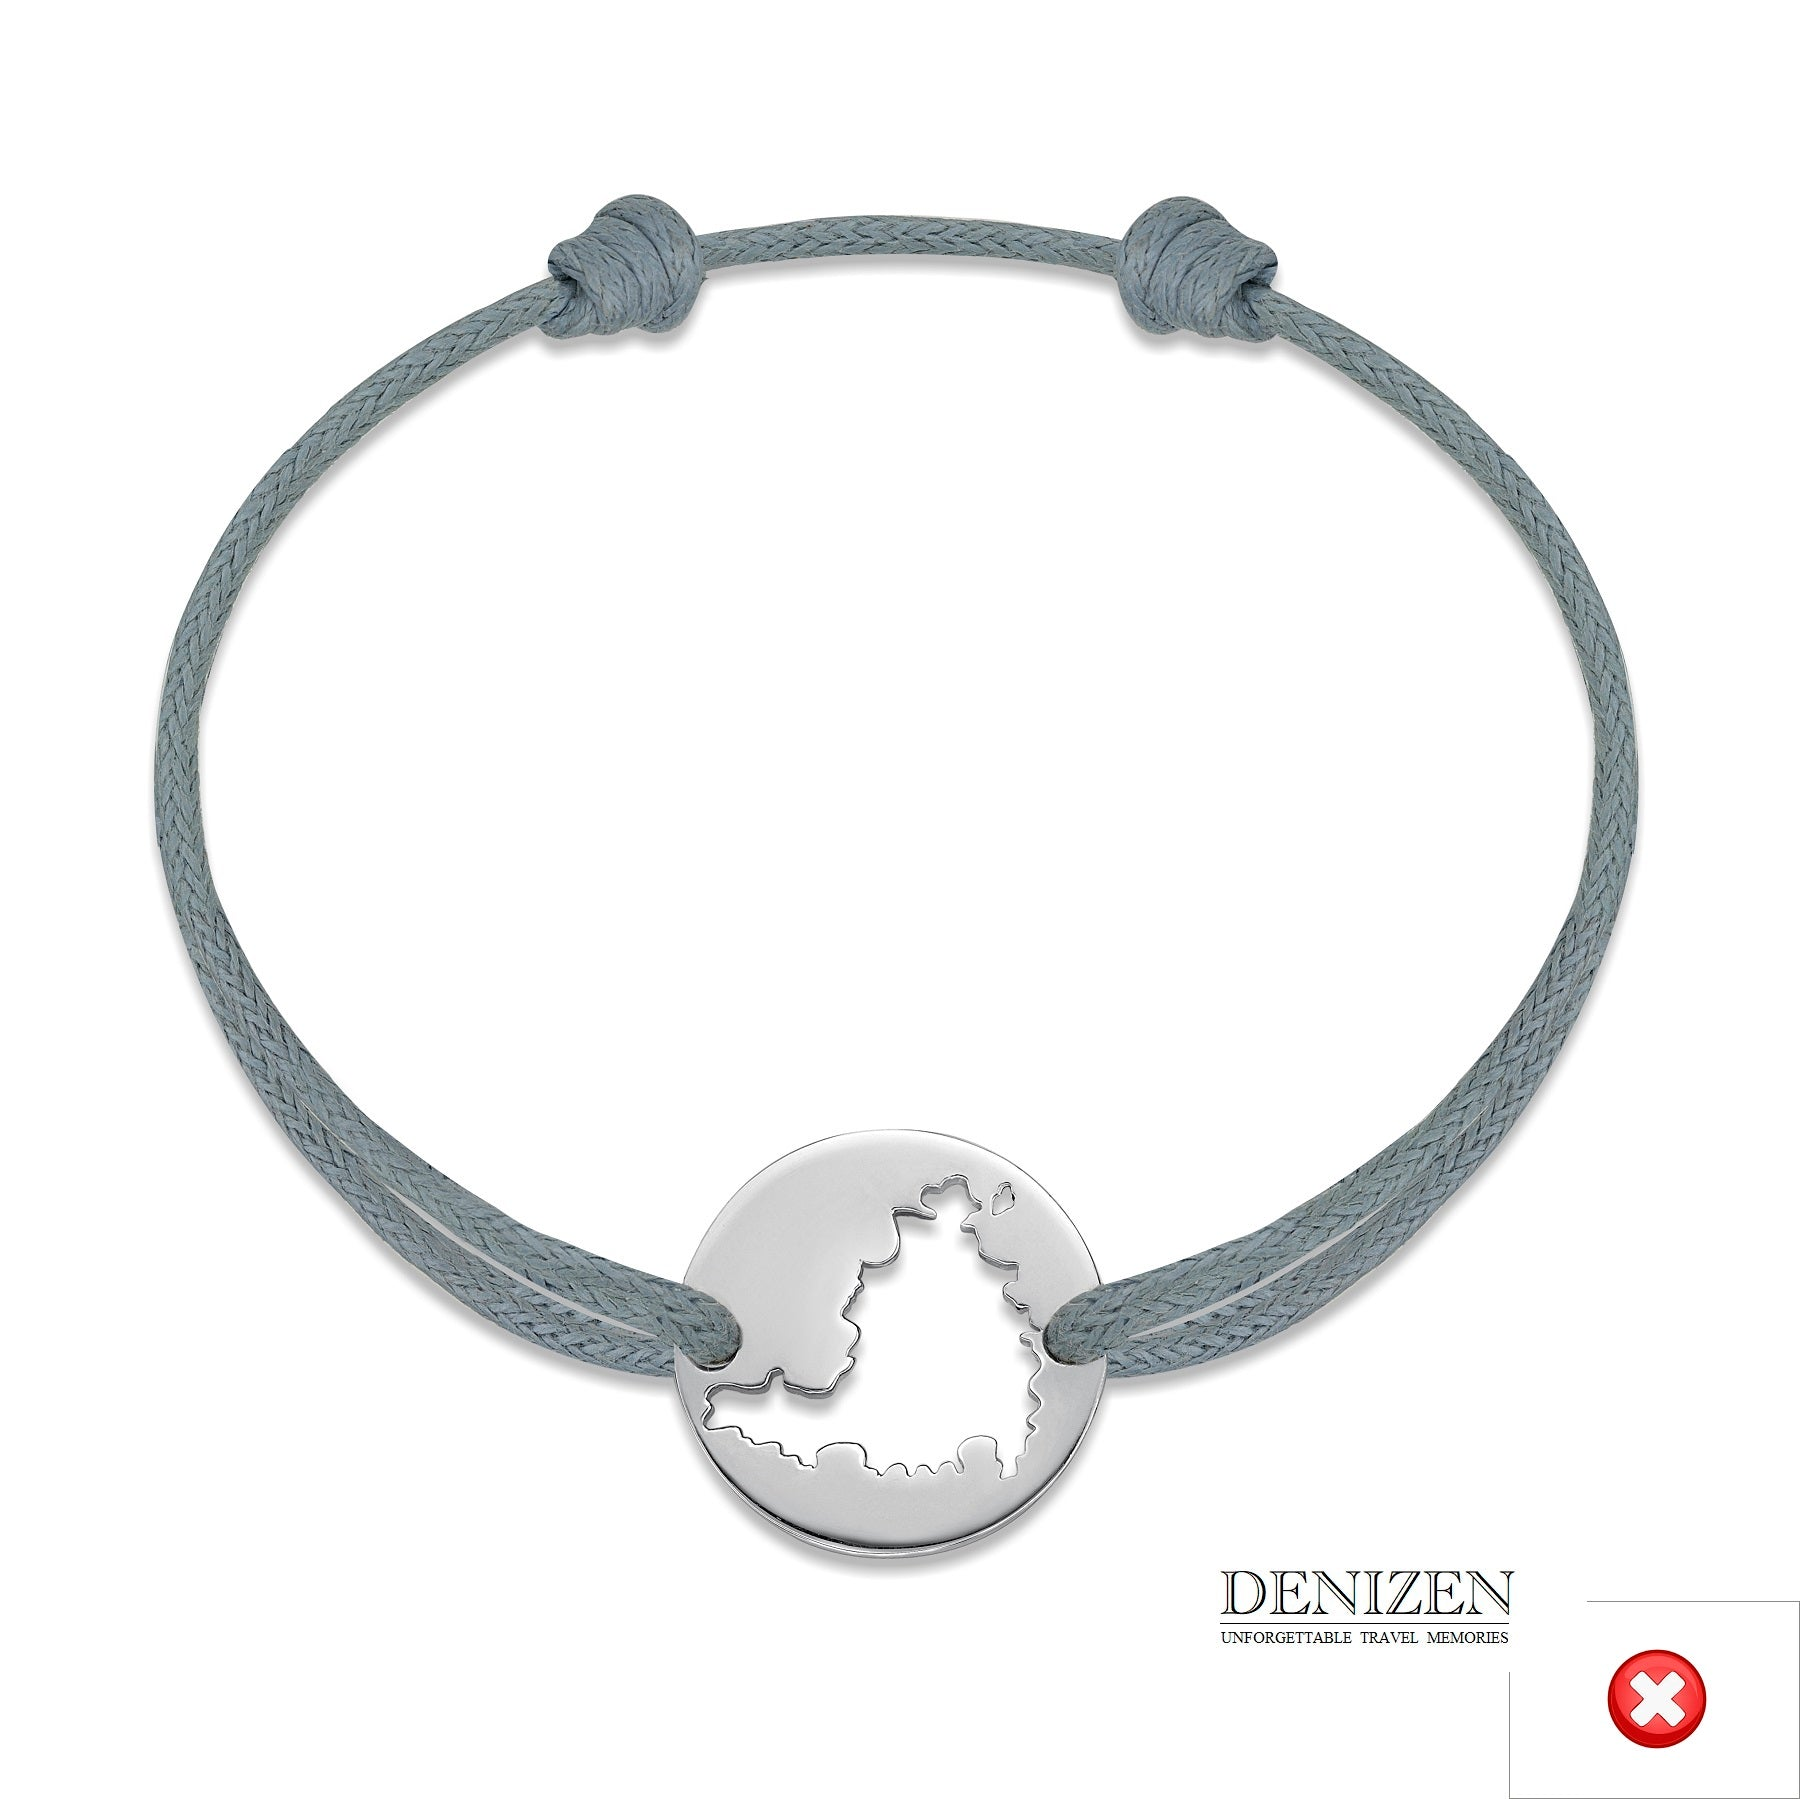 DENIZEN Bracelet Grey color #128